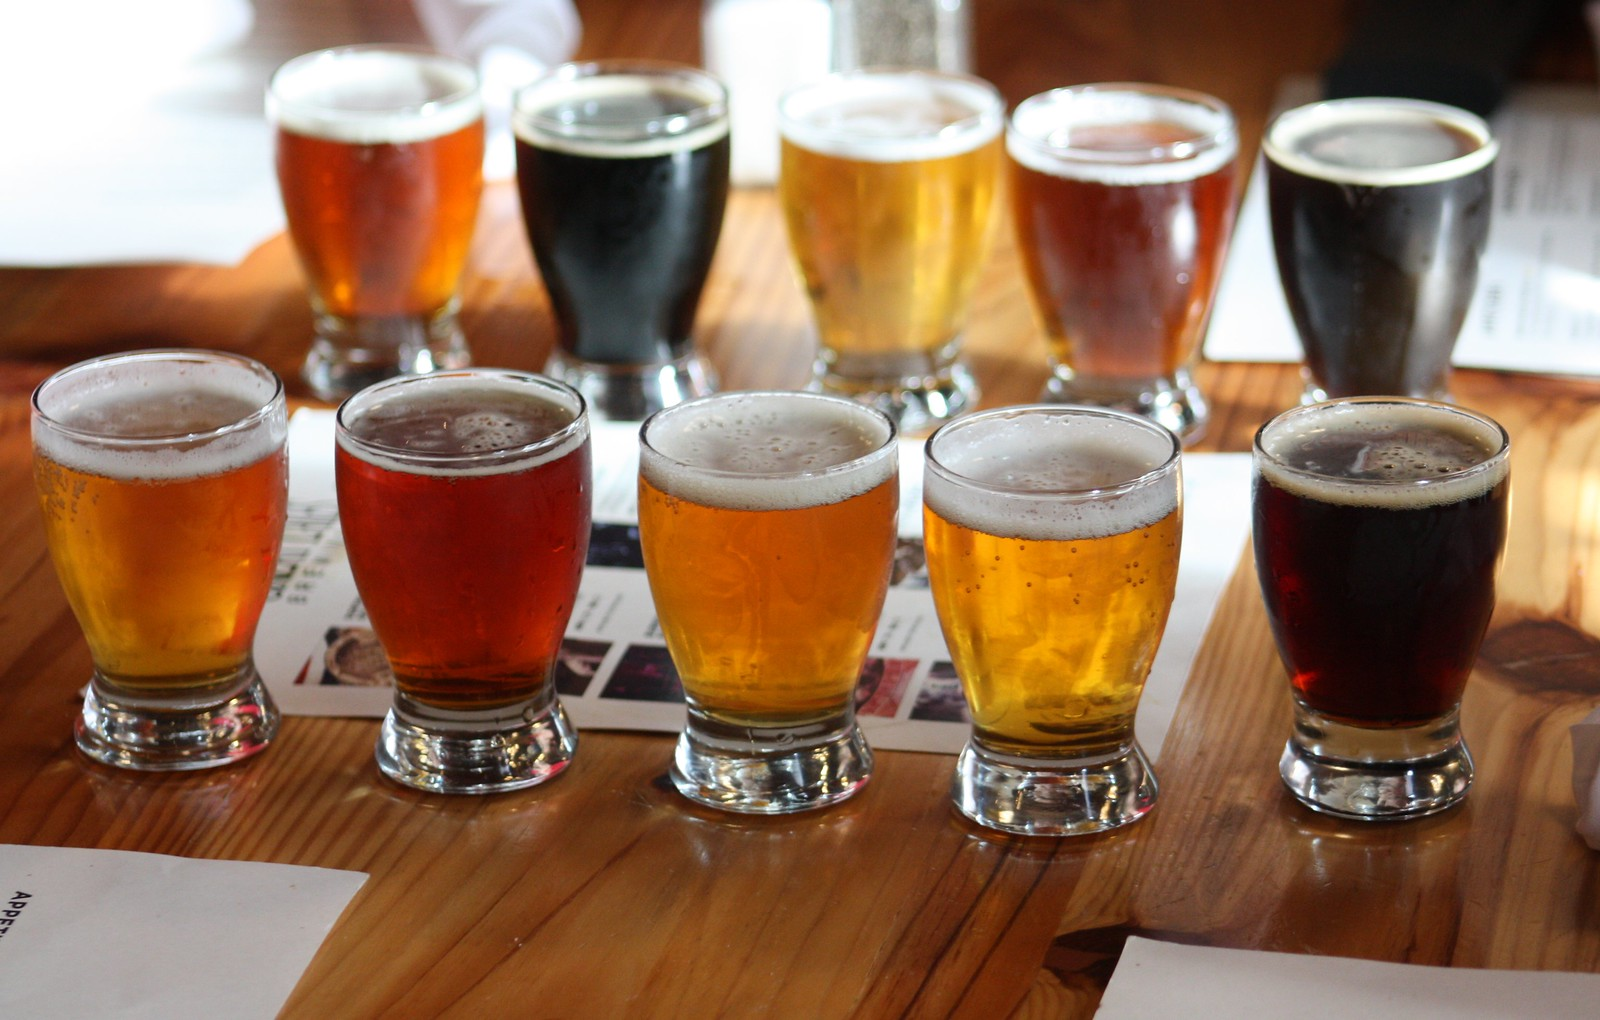 Beer Tasting Sampler at Great Lakes Brewing Co